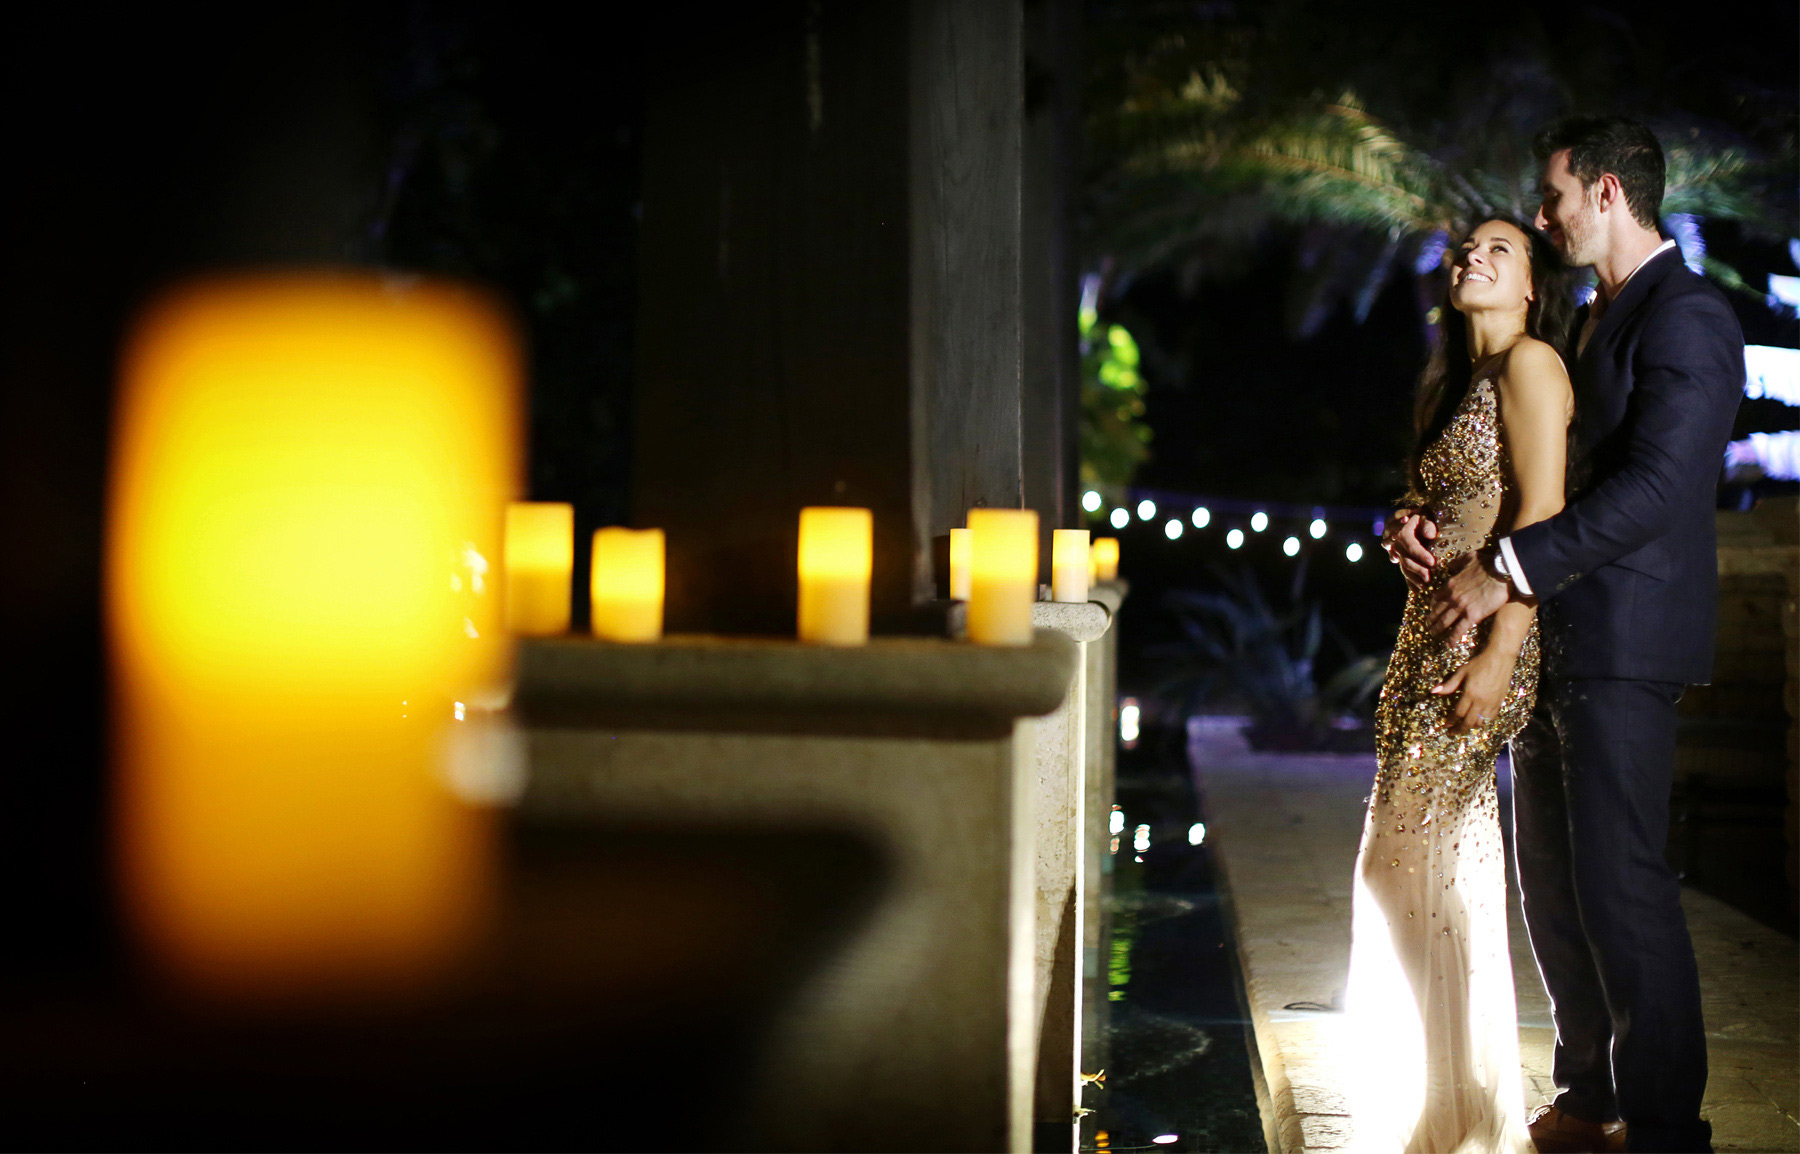 04-Puerto-Rico-Wedding-Photography-by-Vick-Photography-Destination-Wedding-Island-Tropical-Paradise-Resort-Candle-Light-Chanel-and-Sam.jpg